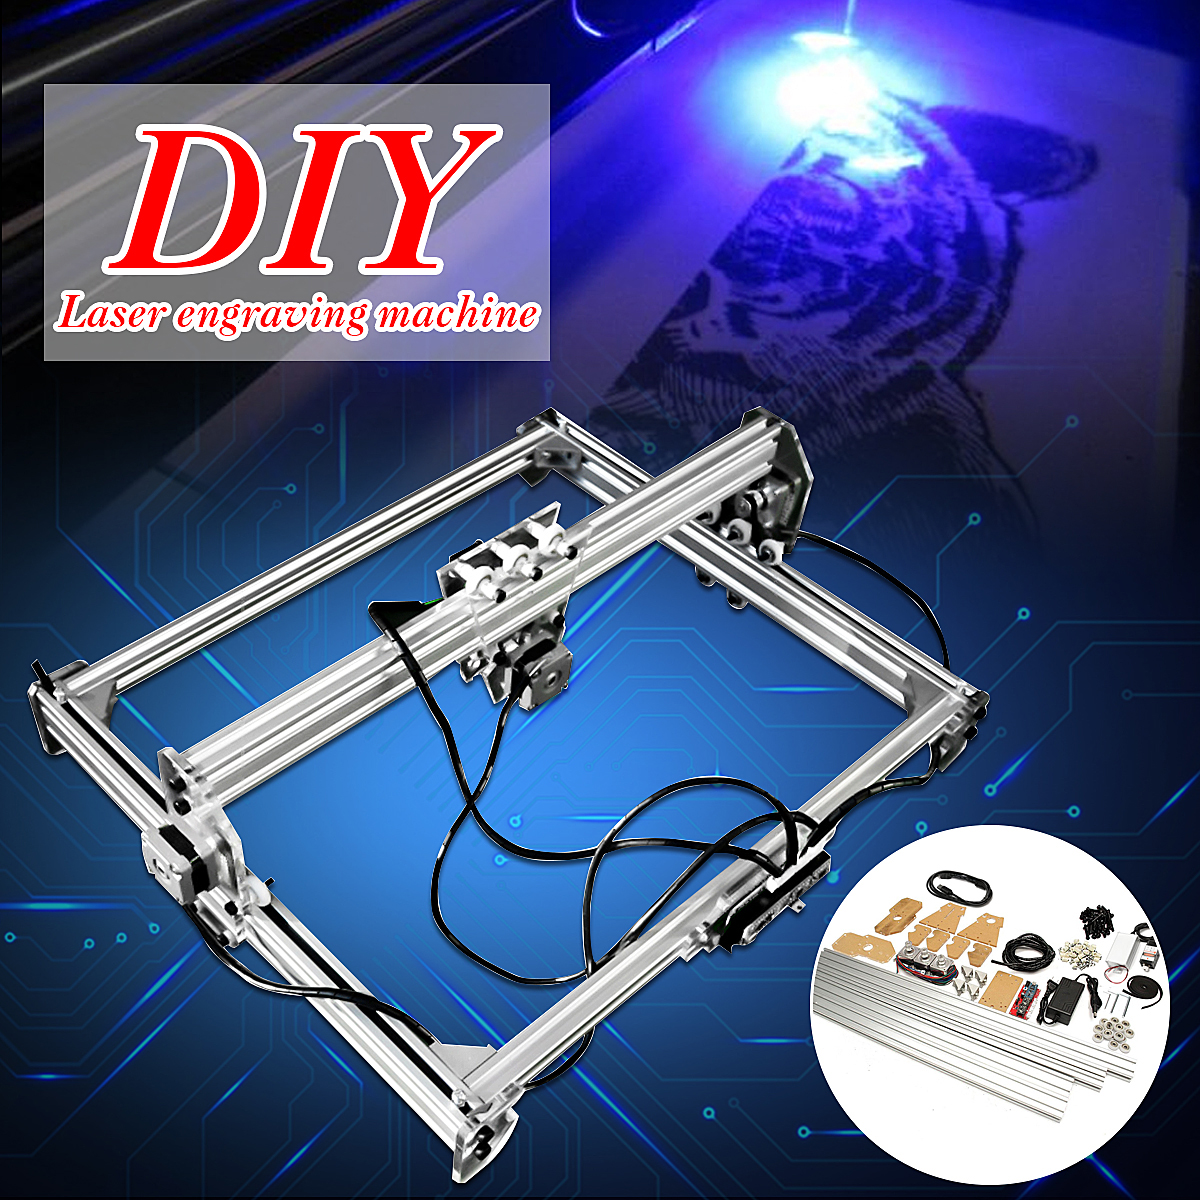 50*65cm Mini 3000MW Blue CNC Laser Engraving Machine 2Axis DC 12V DIY Engraver Desktop Wood Router/Cutter/Printer+ Laser otomatik çadır